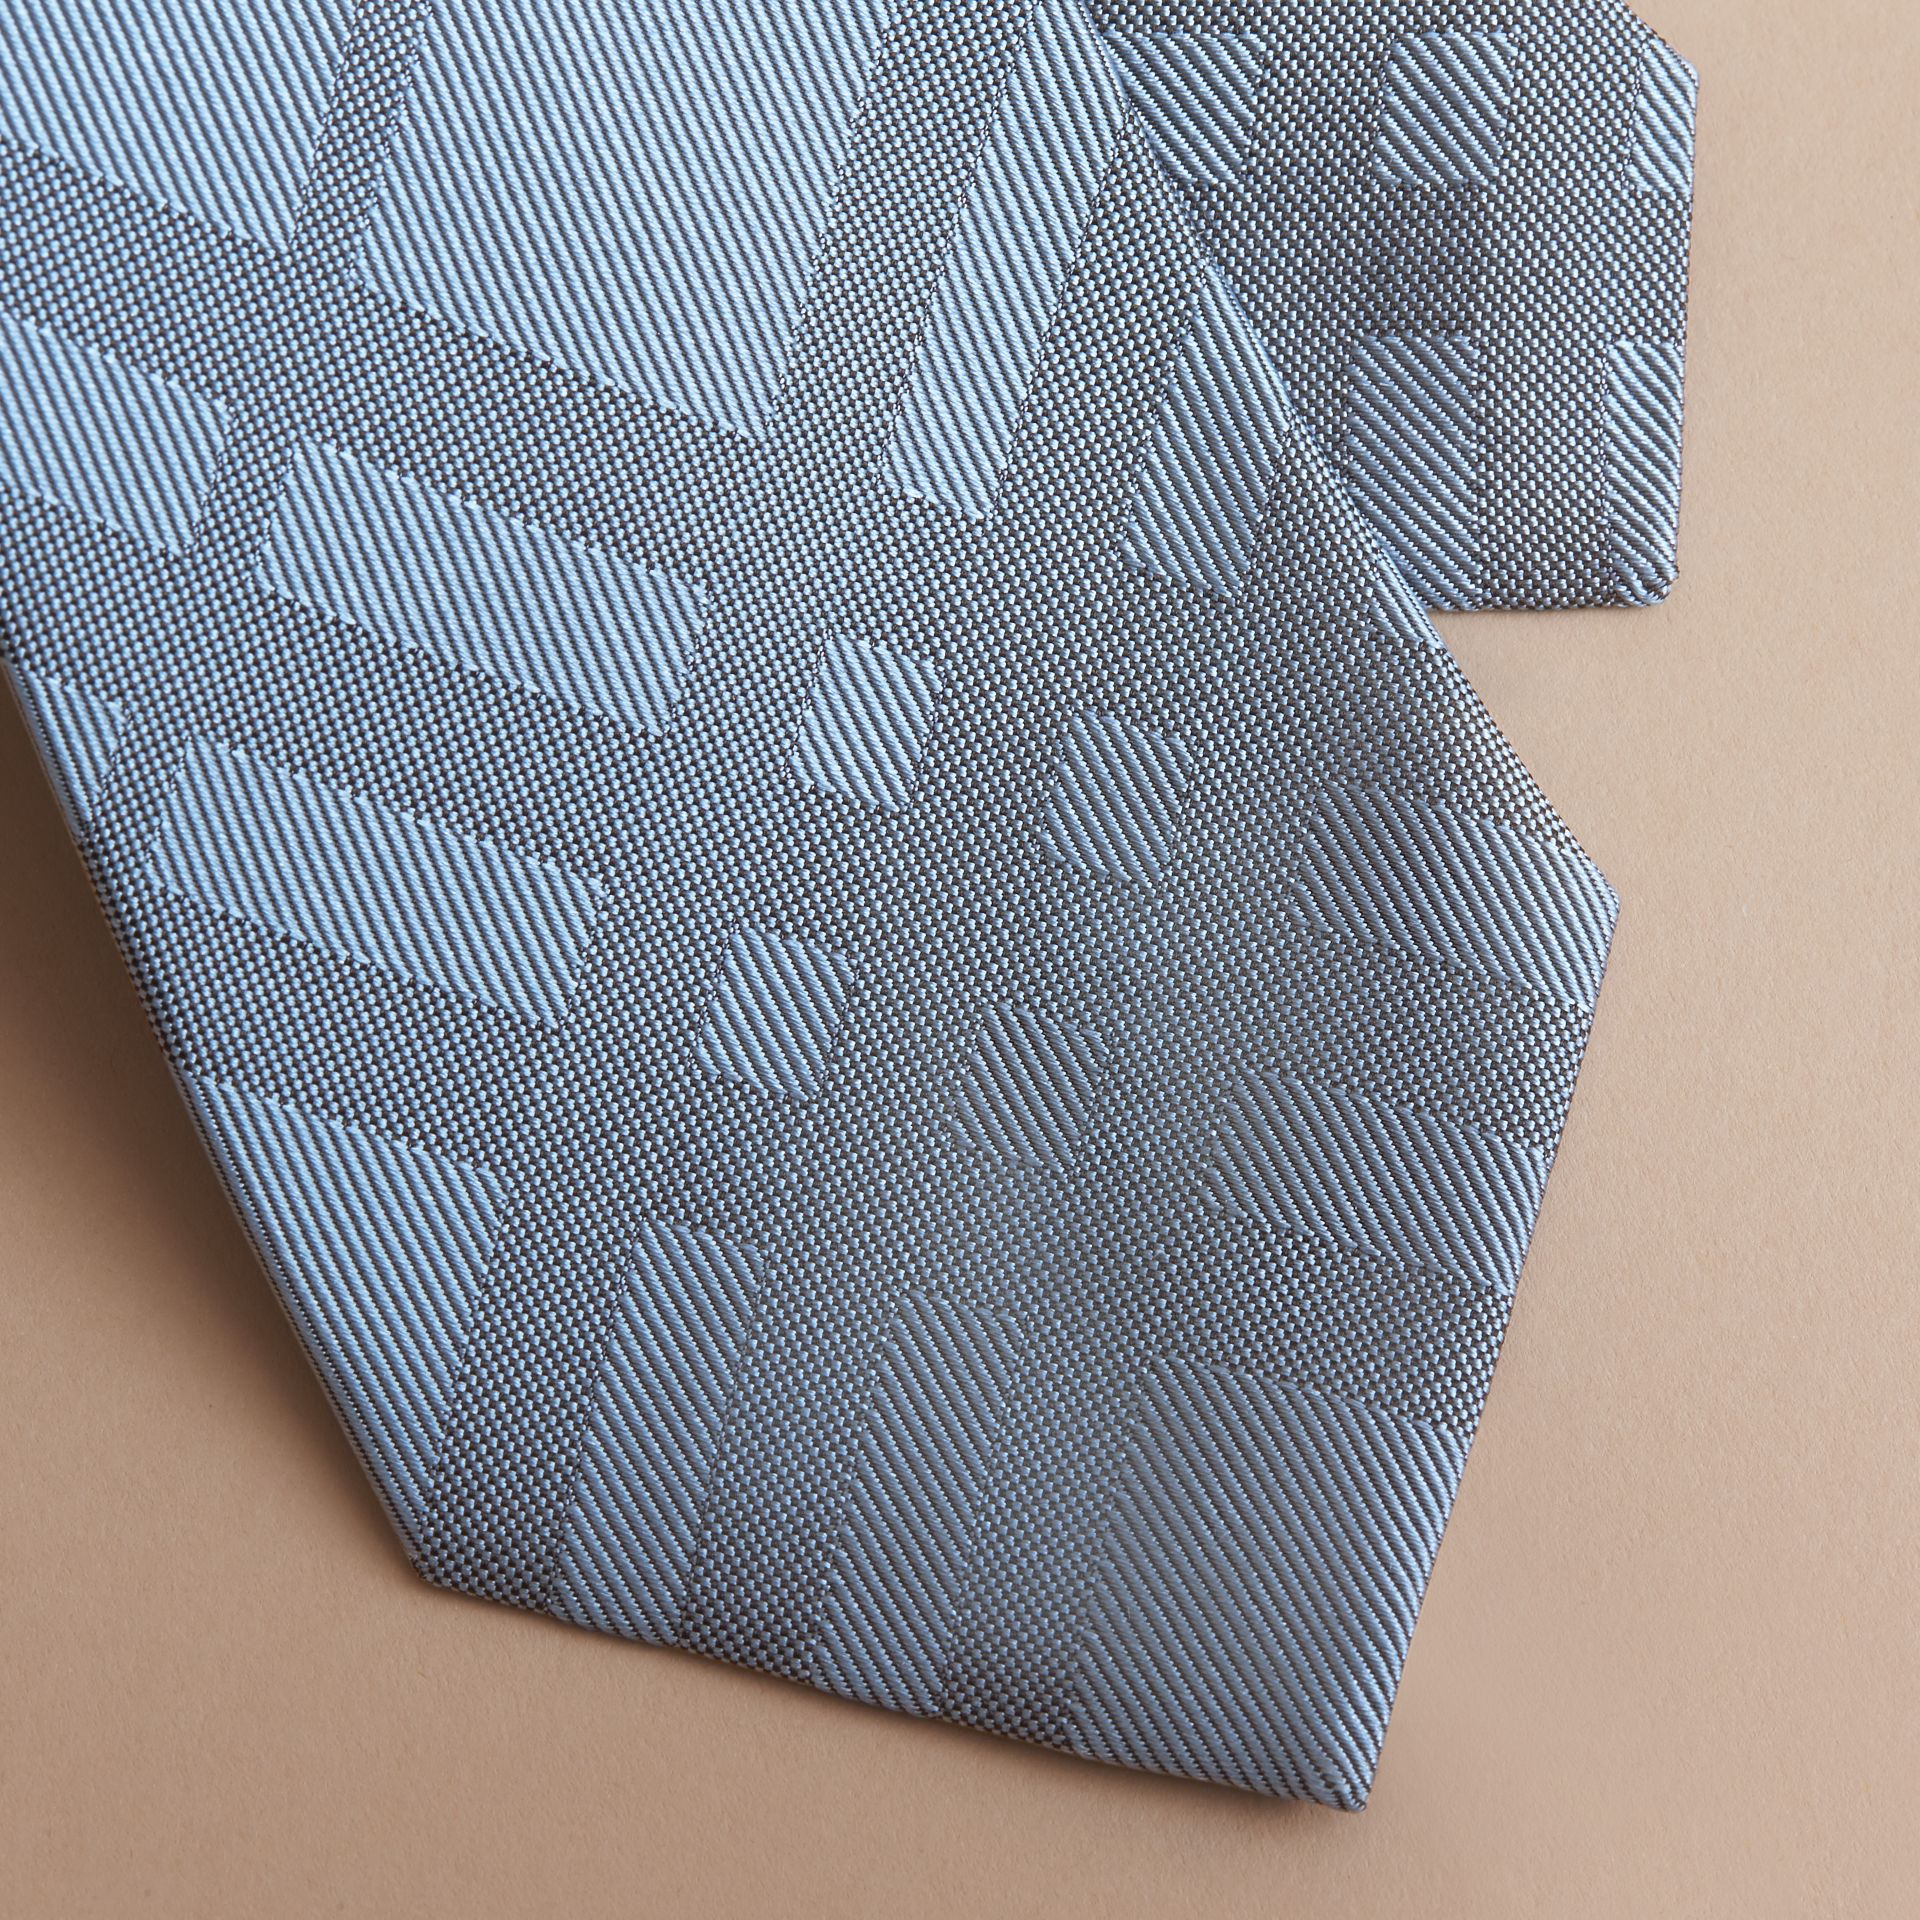 Classic Cut Check Silk Jacquard Tie in Light Blue - Men | Burberry - gallery image 2